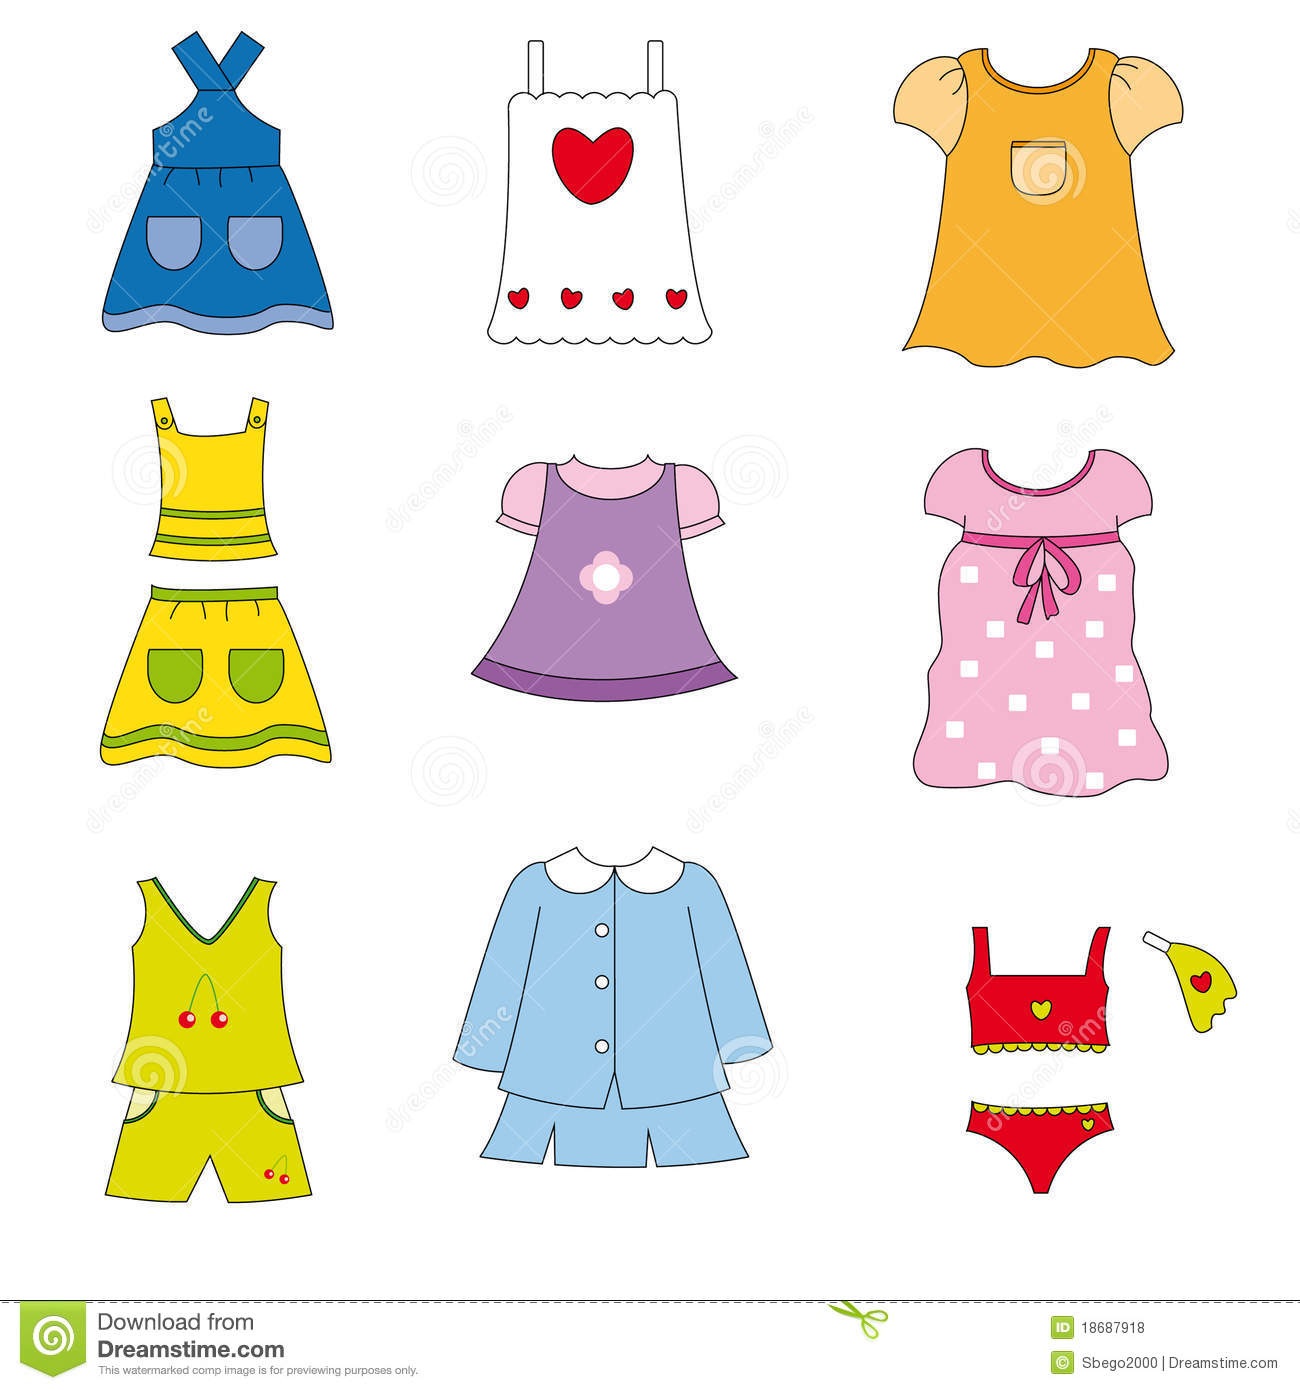 Yellow Dress clipart summer dress Free Collection for clothing Clothes